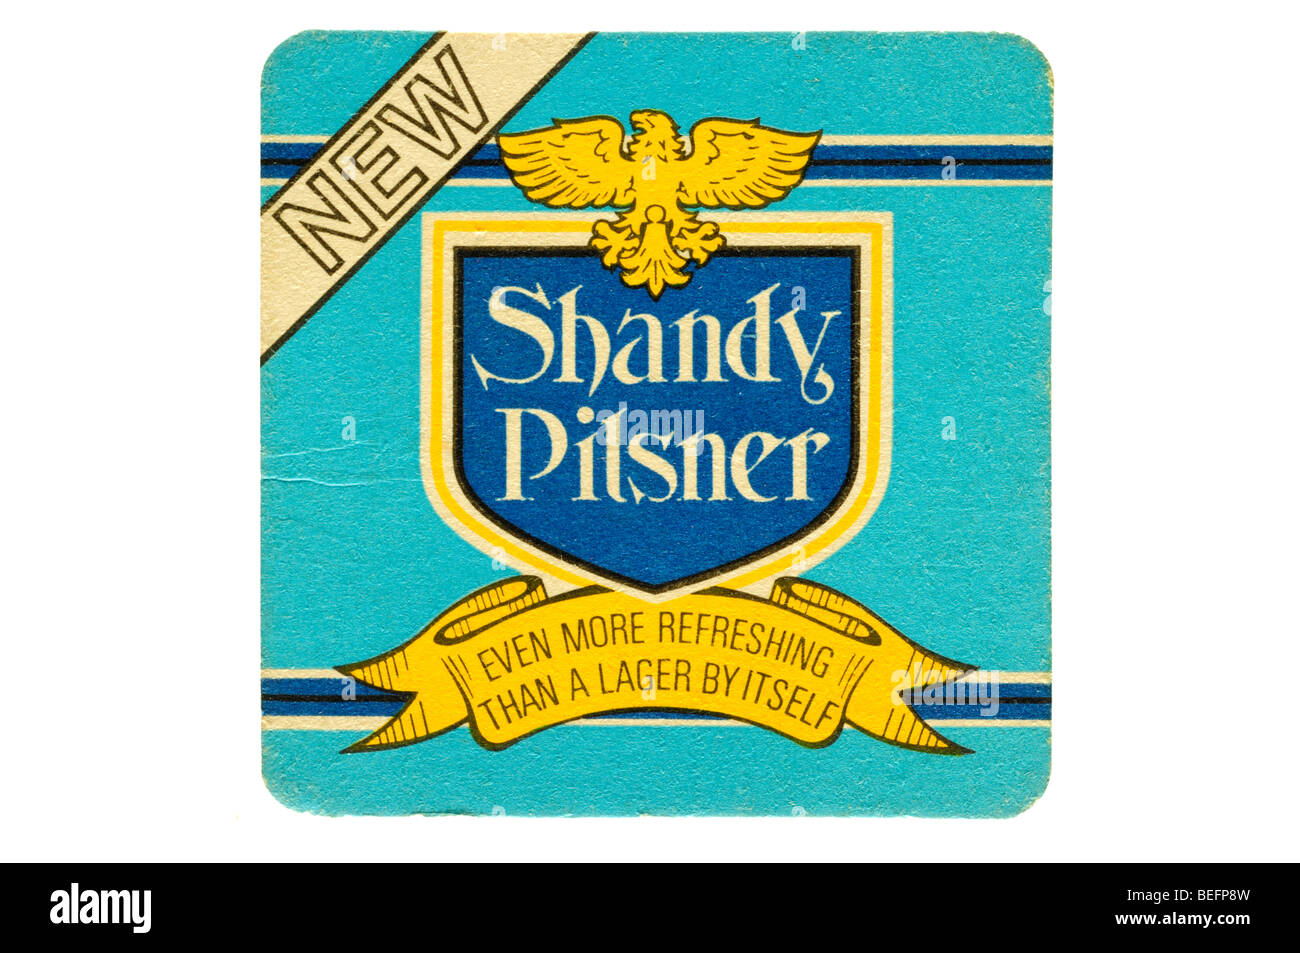 new shandy pilsner even more refreshing than a lager by itself Stock Photo